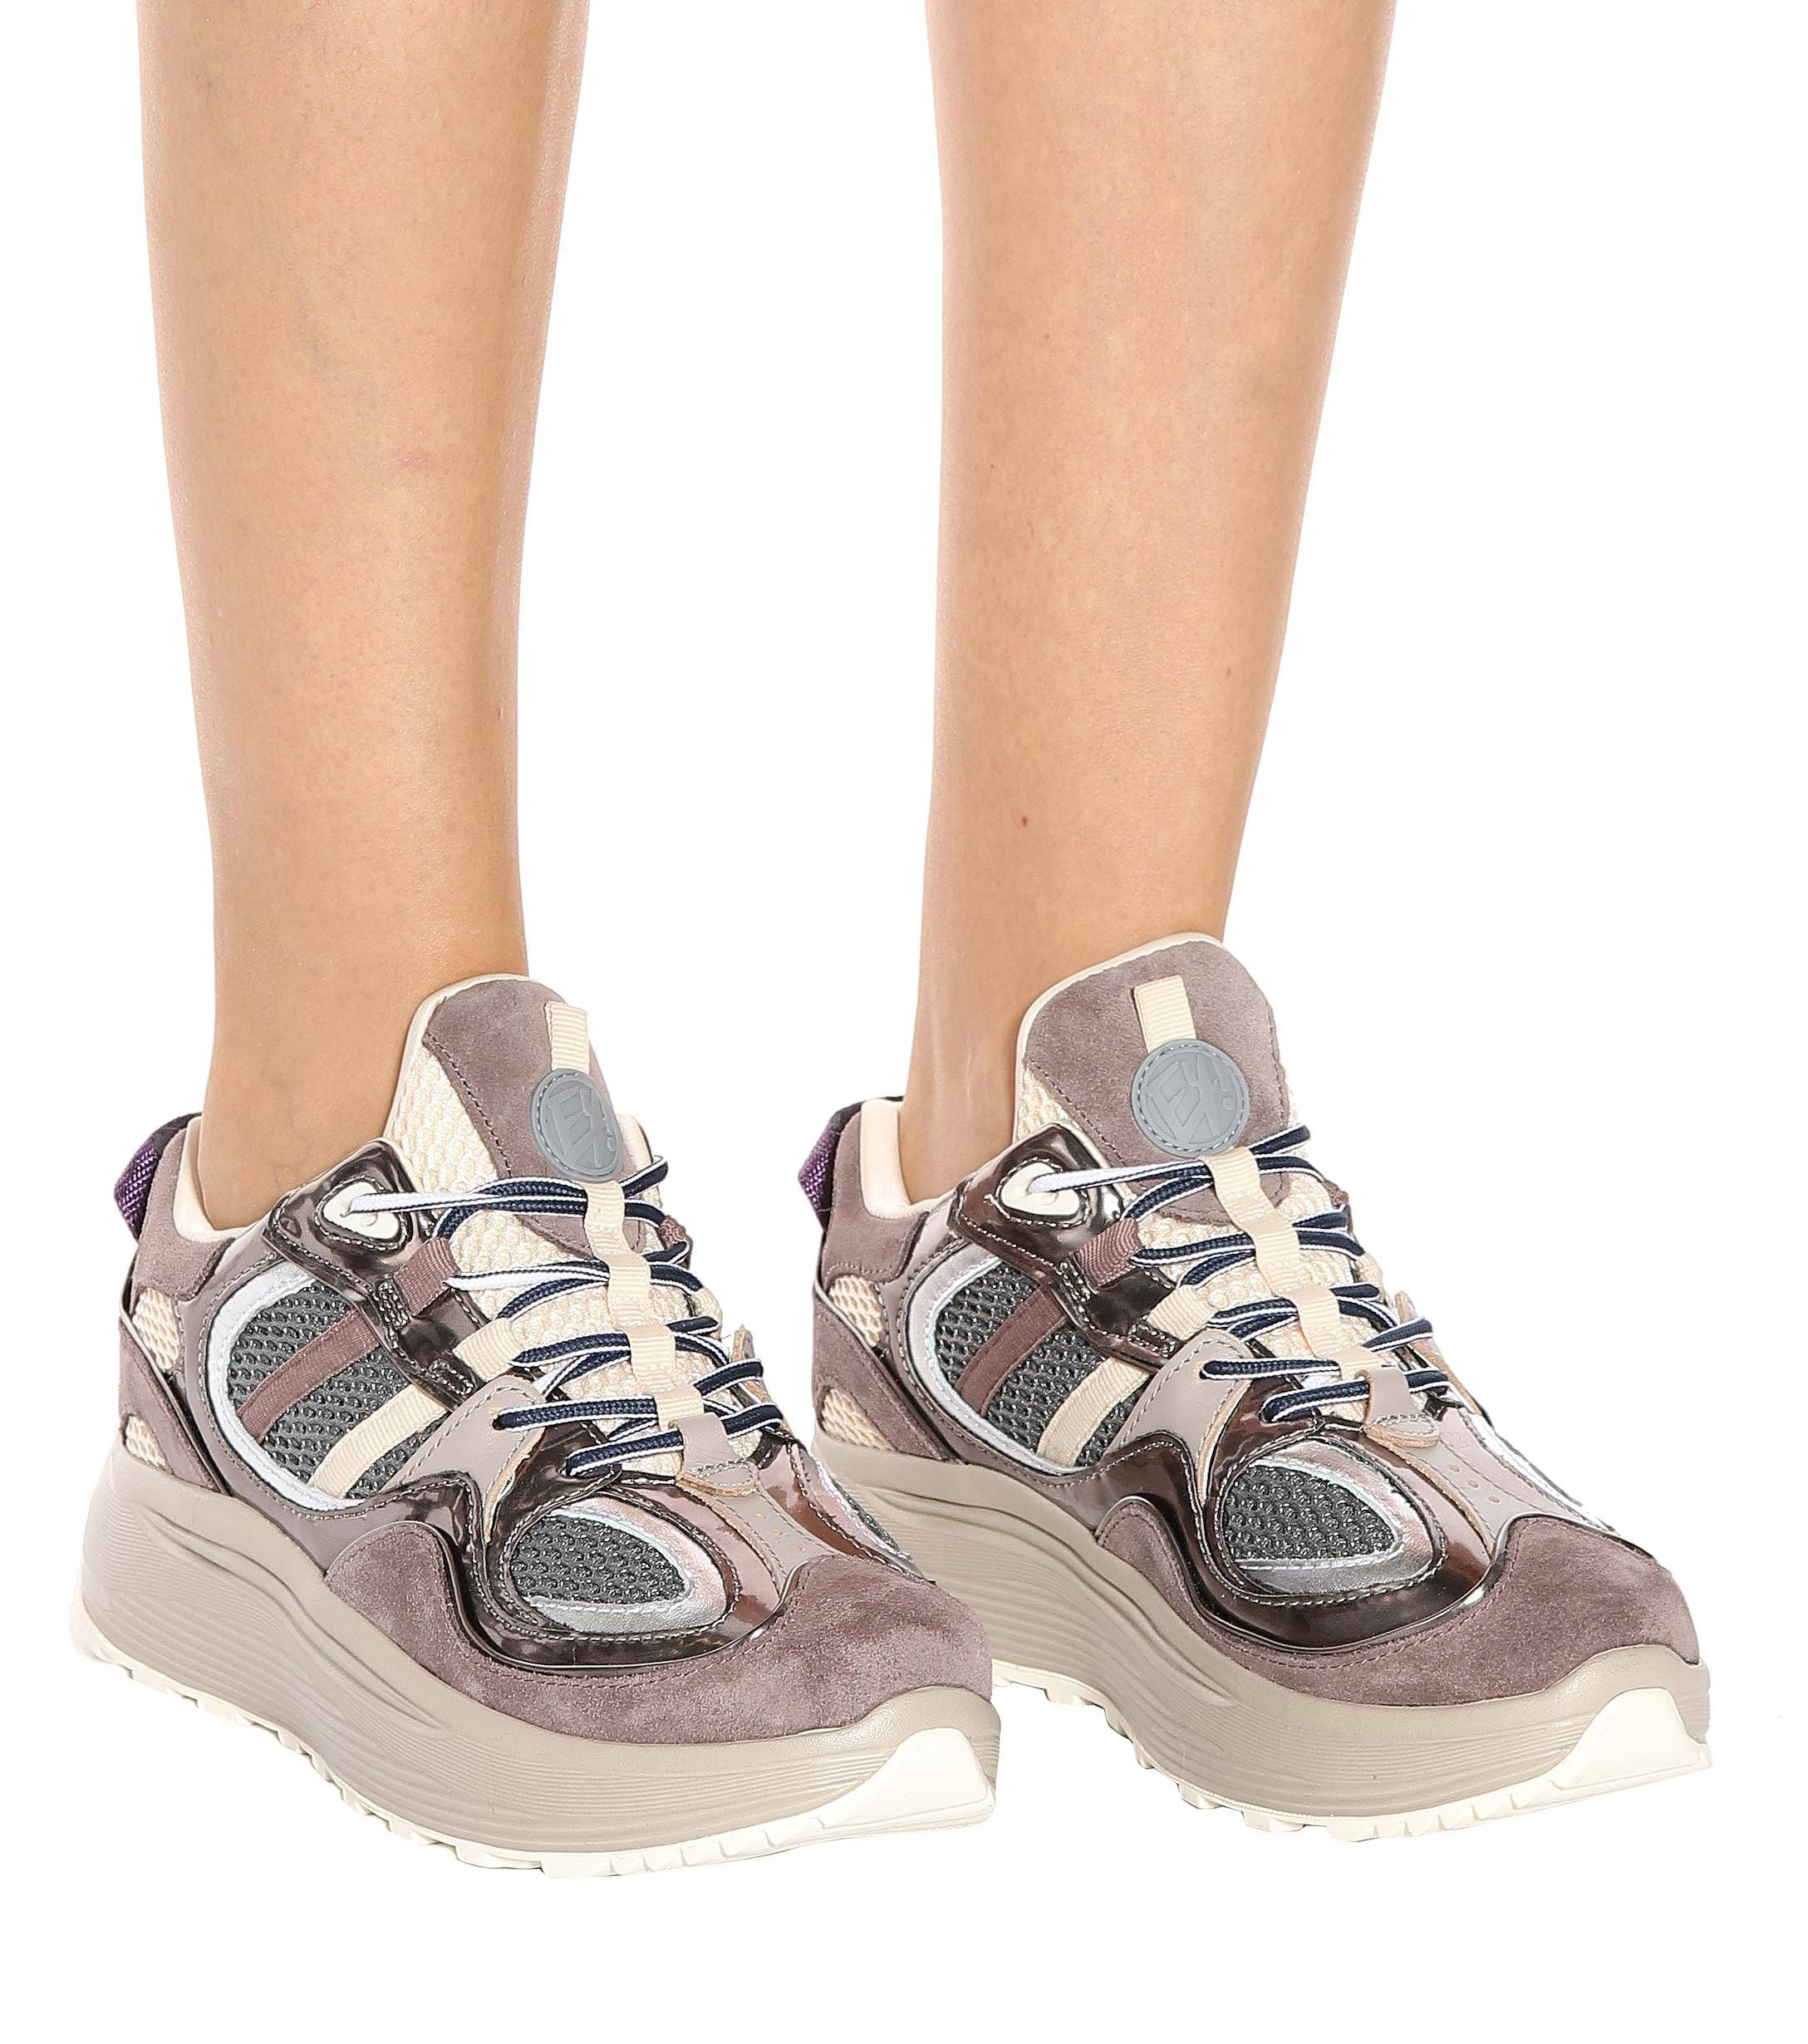 798d71db50 Eytys - Multicolor Jet Turbo Suede And Leather Sneakers - Lyst. View  fullscreen